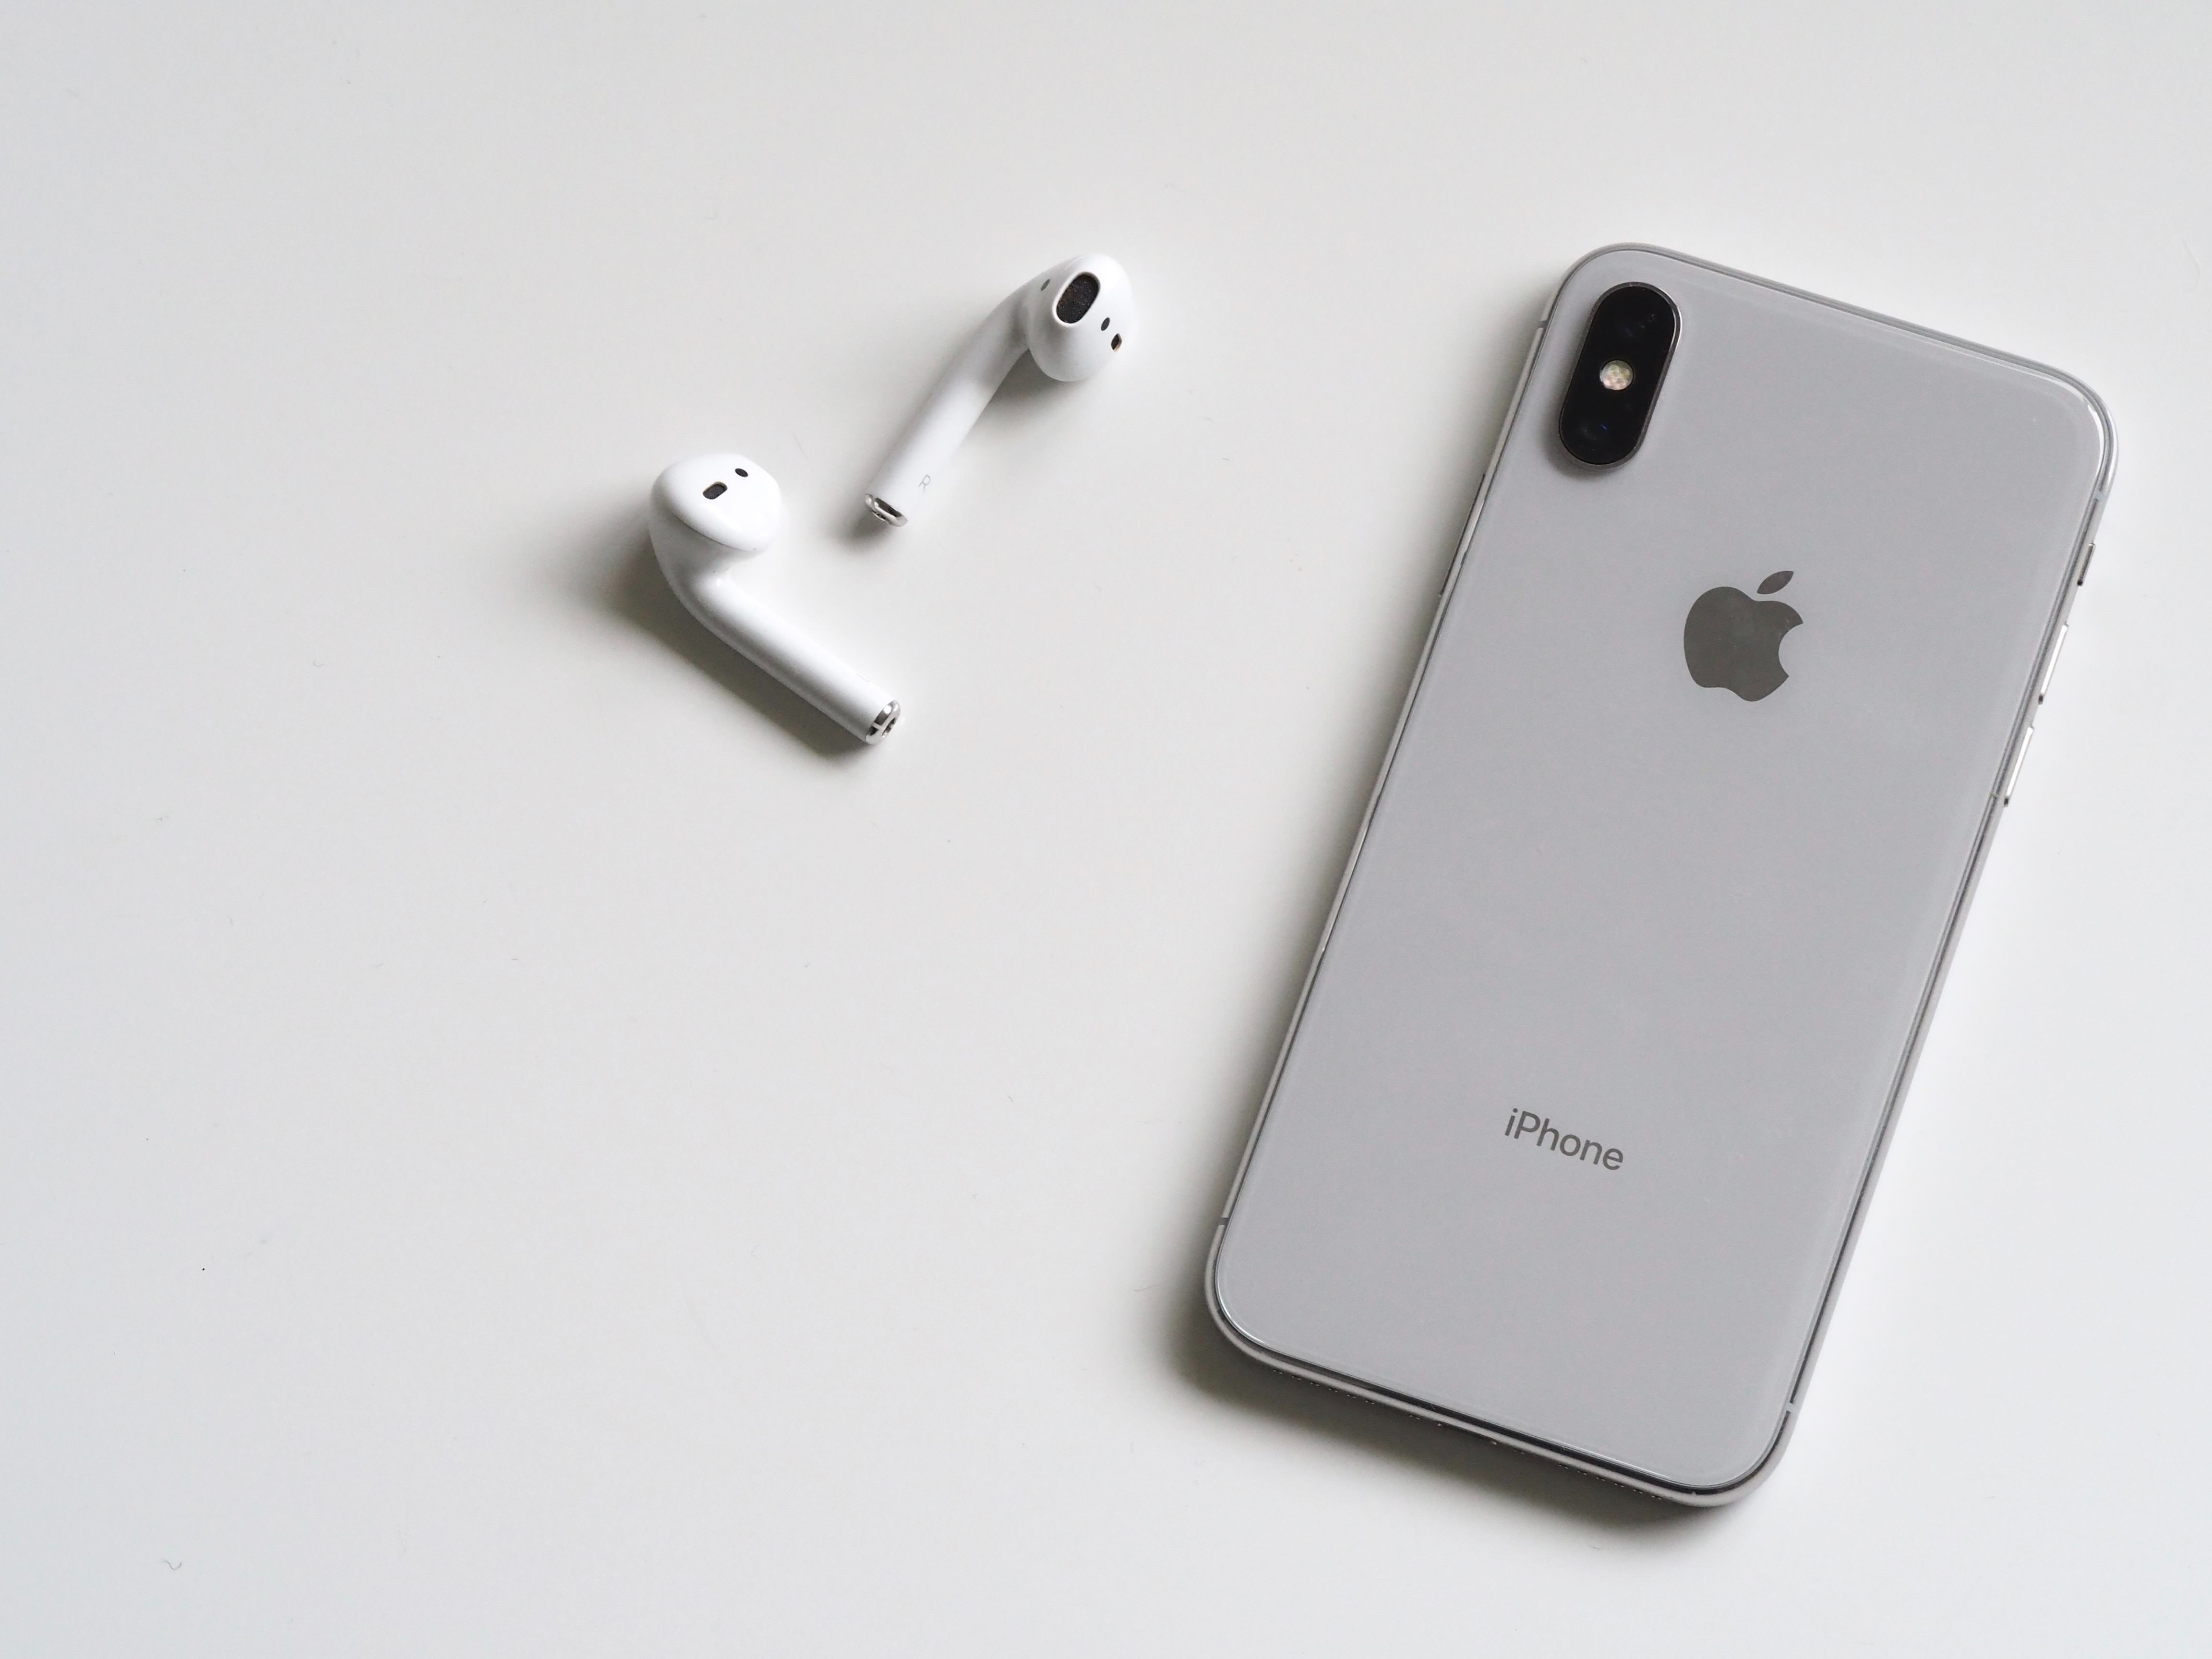 How much does it cost to assemble an iPhone for parts